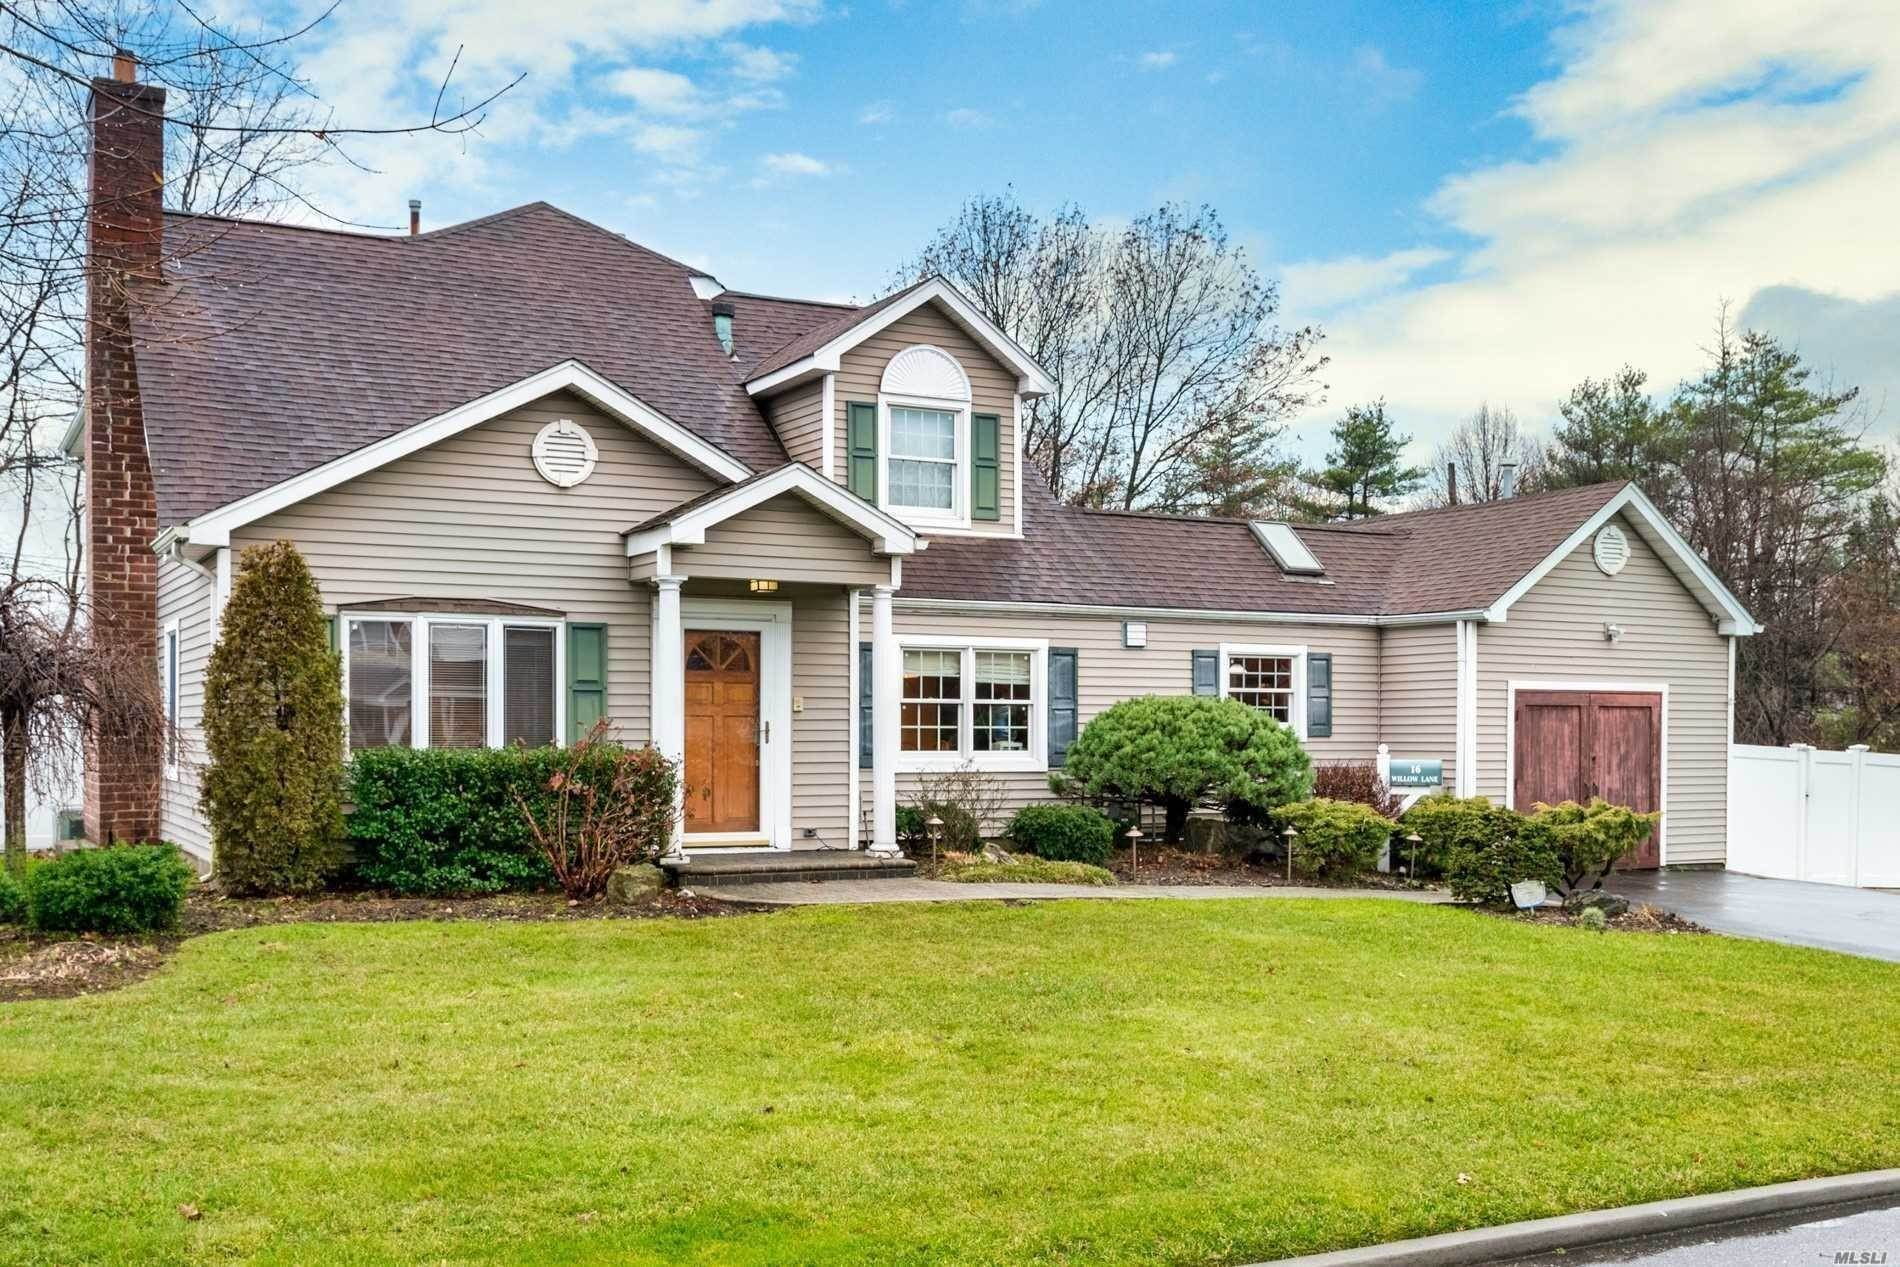 Residential for Sale at 16 Willow Lane, Carle Place, NY 11514 Carle Place, New York 11514 United States